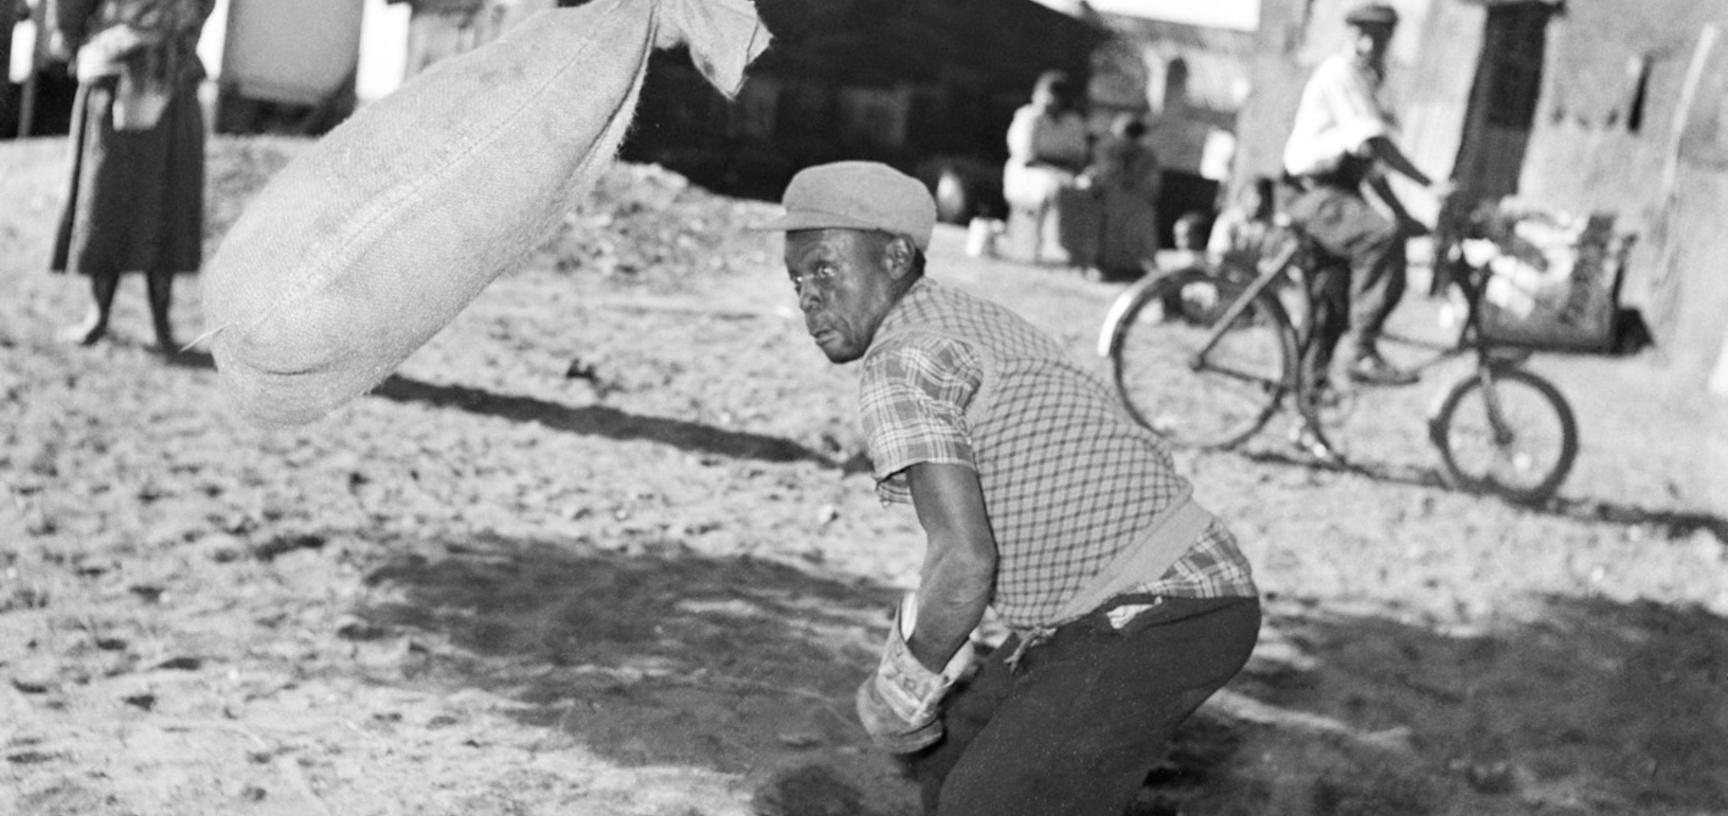 Boxing practice. Windermere, Cape Town, South Africa. Photograph by Bryan Heseltine. Circa 1949–1952. (Copyright Bryan Heseltine)